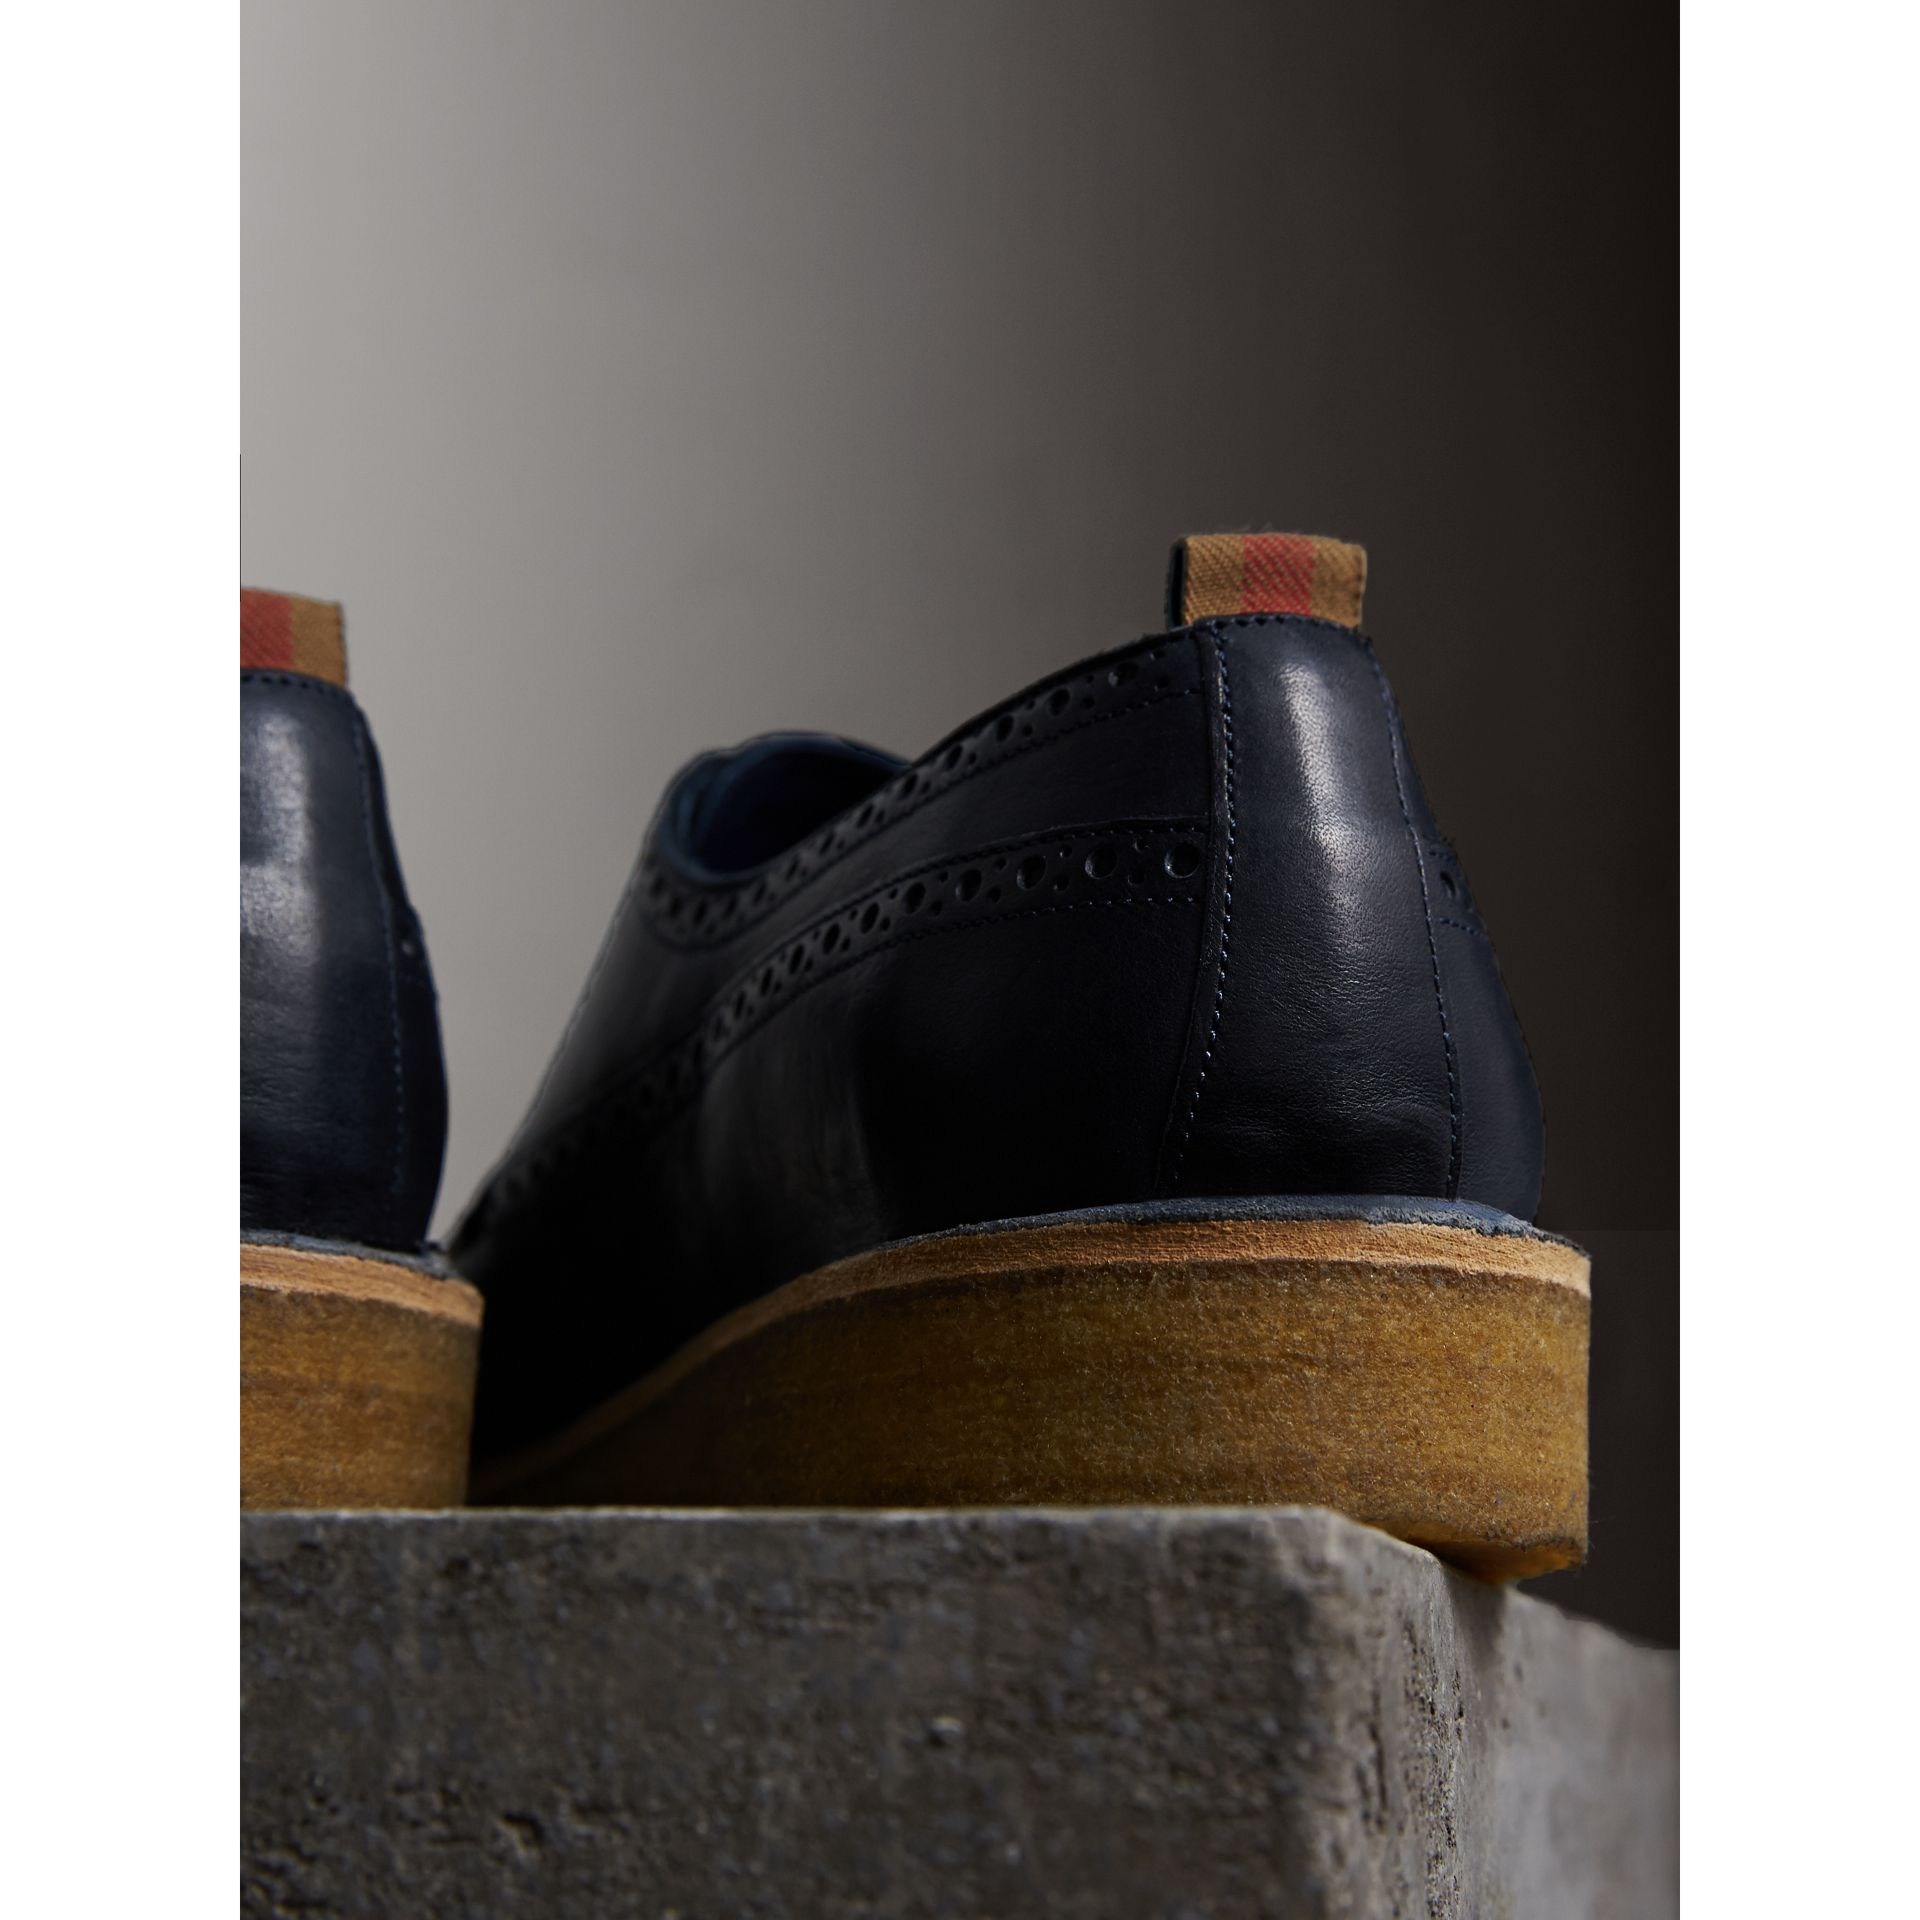 Raised Toe-cap Nappa Leather Brogues in Navy - Men | Burberry - gallery image 3